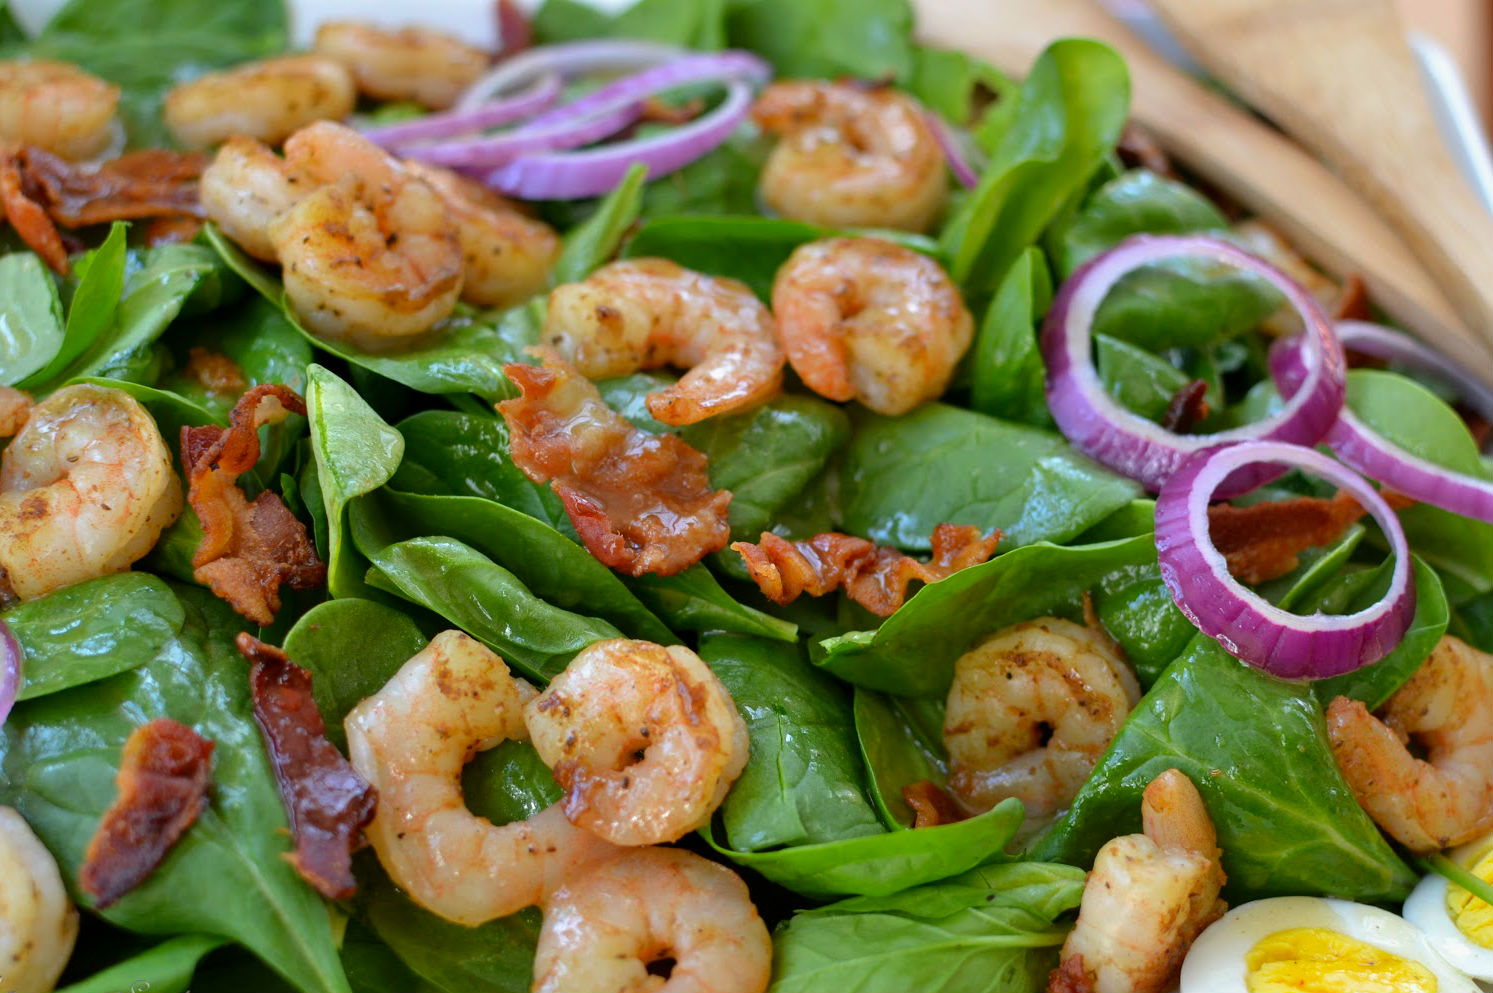 Number 7- Shrimp and Spinach Salad